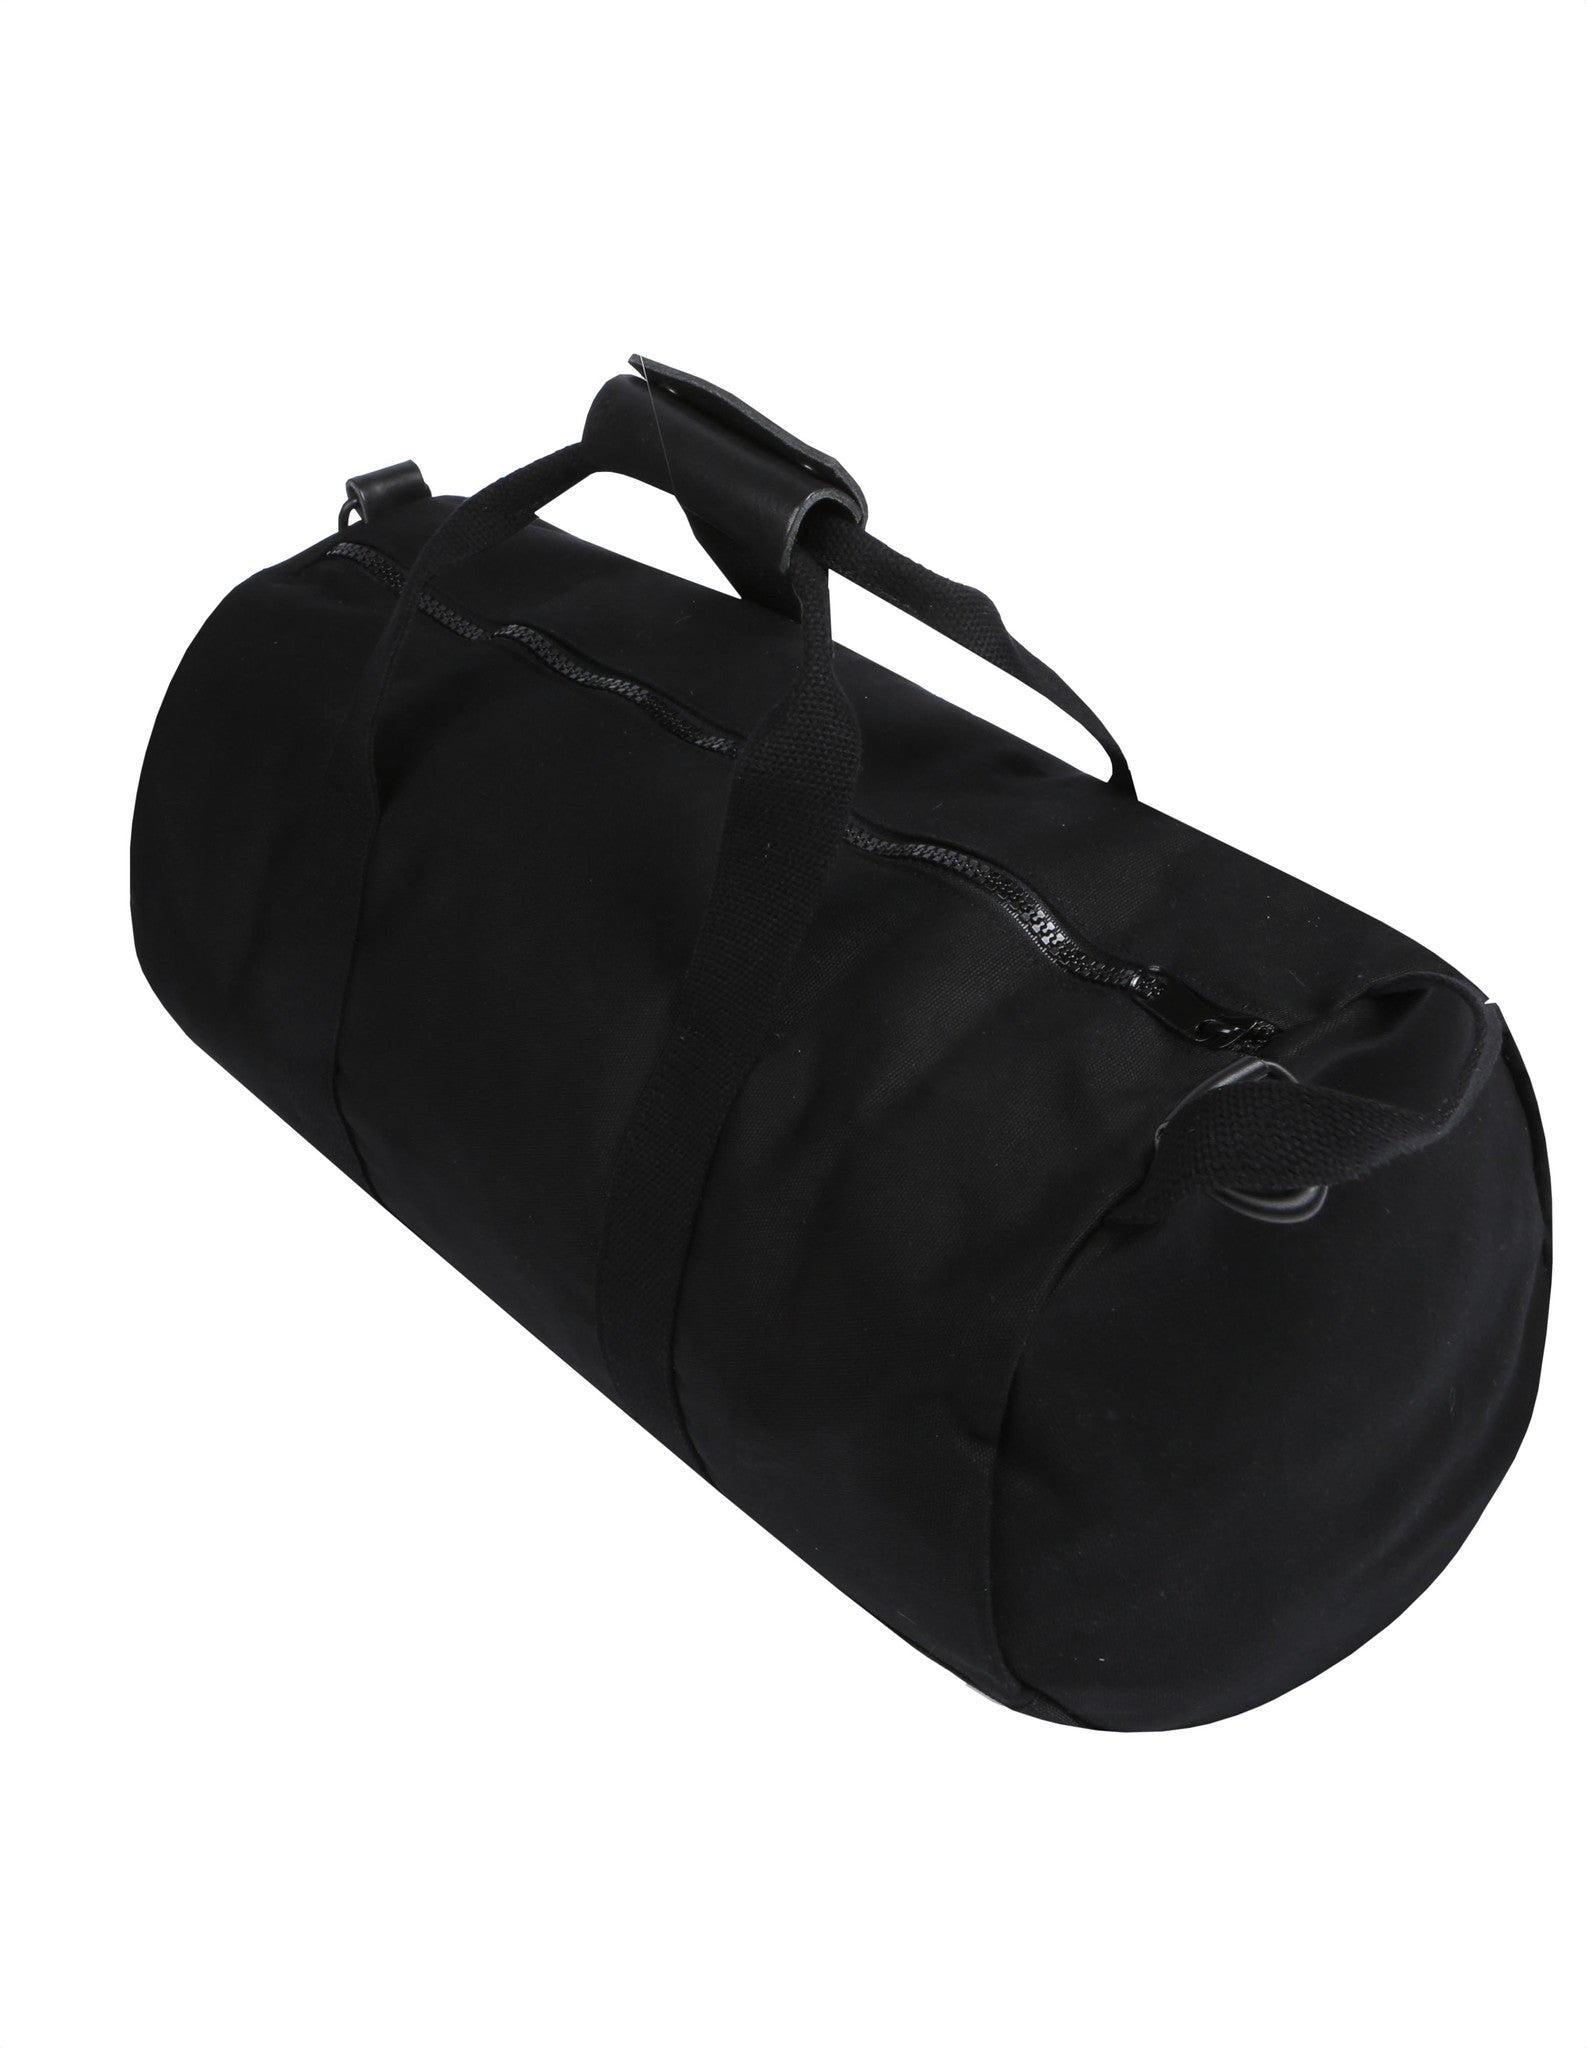 Side angle of Black Work Hard, Play Hard canvas duffel bag by Owen & Fred